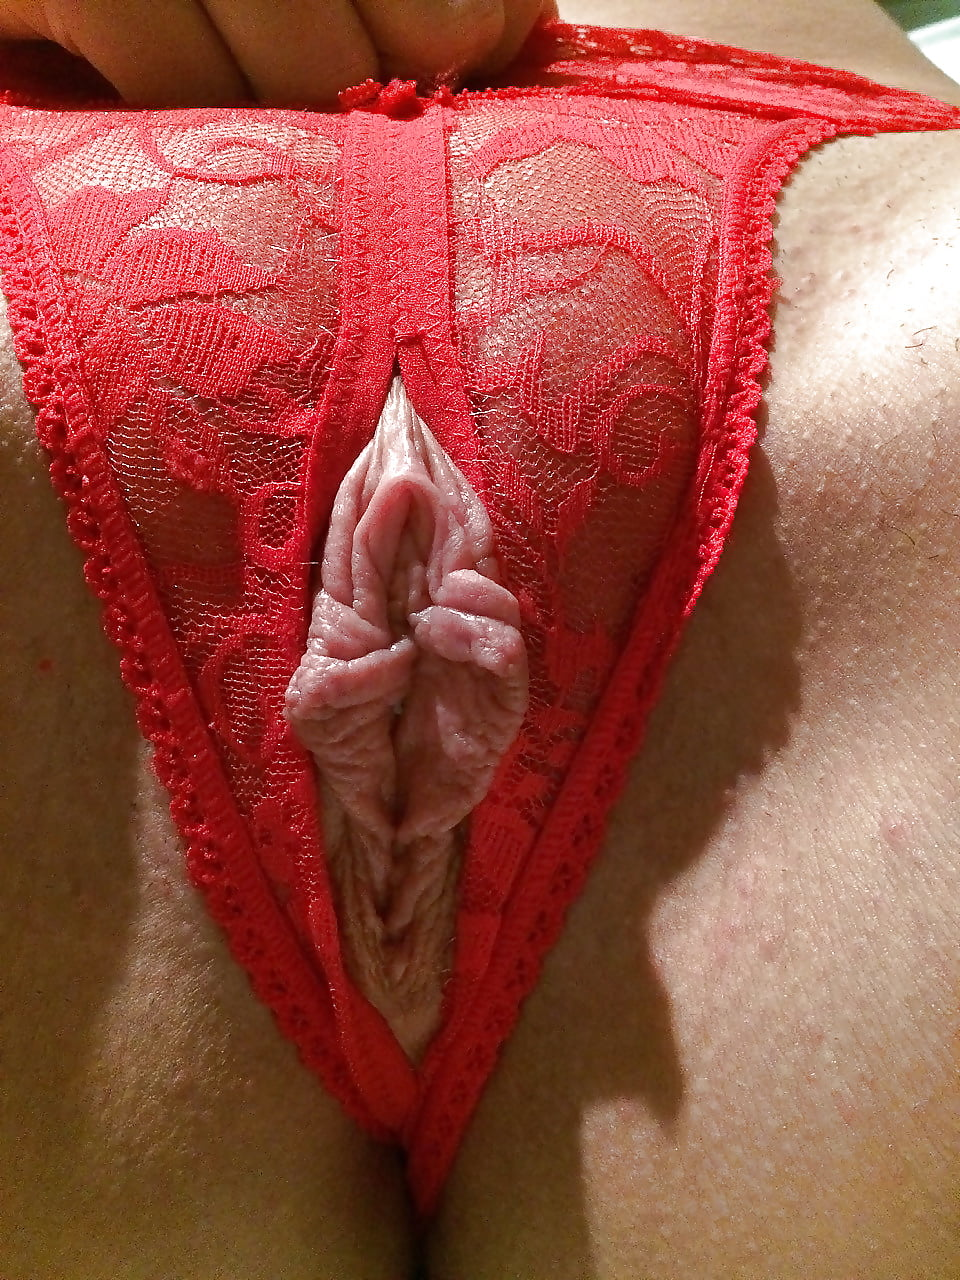 Lacy red panties pulled off to get some doggy style